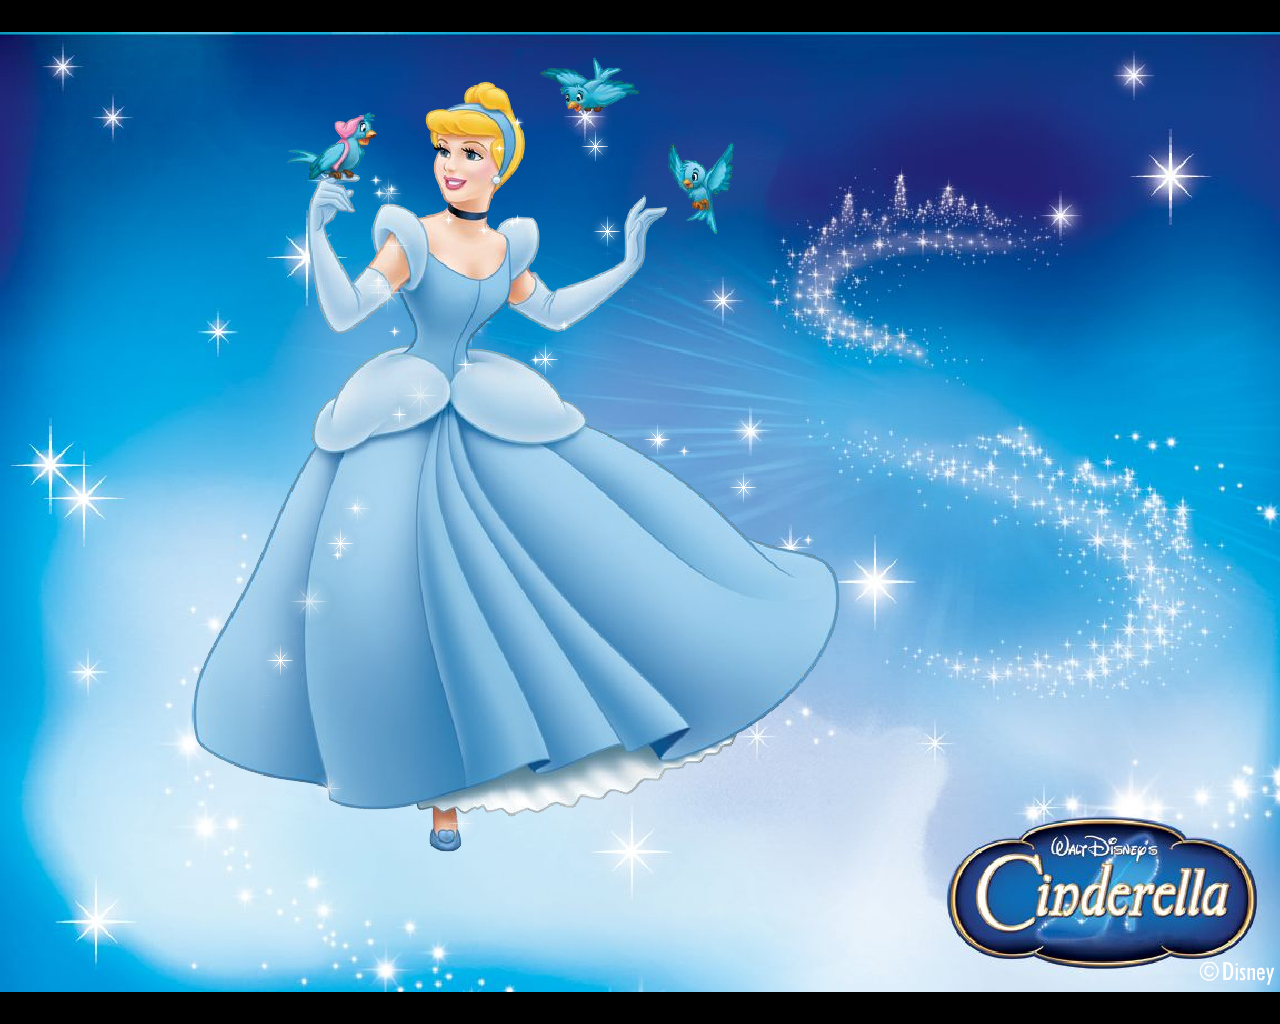 Cinderelia images cinderella hd wallpaper and background photos cinderelia images cinderella hd wallpaper and background photos altavistaventures Image collections